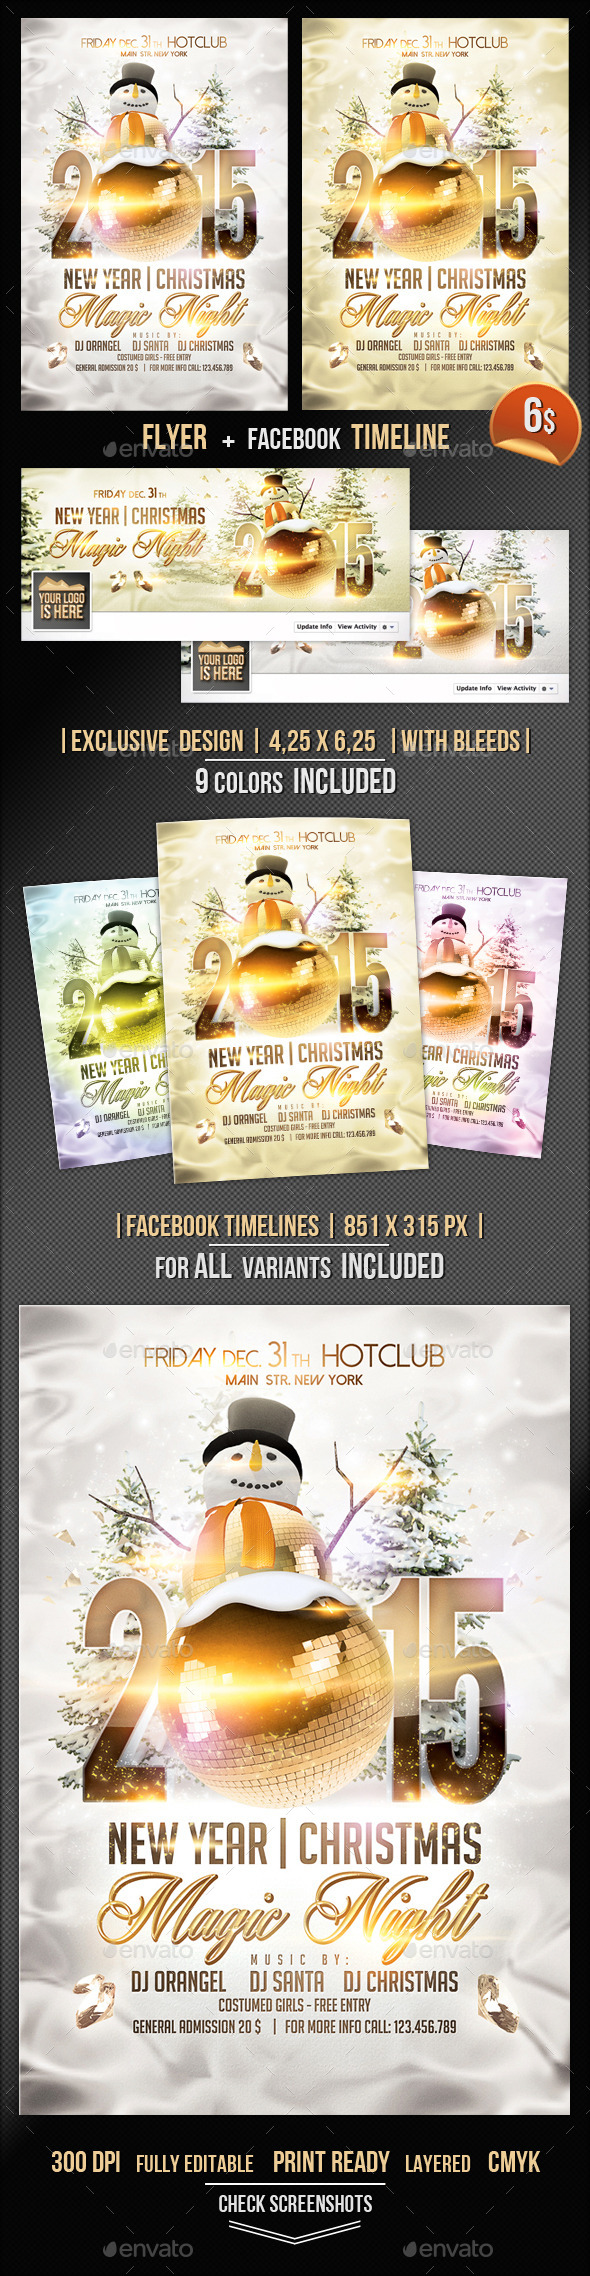 Magic Christmas Flyer + Fb Timeline Template - Events Flyers